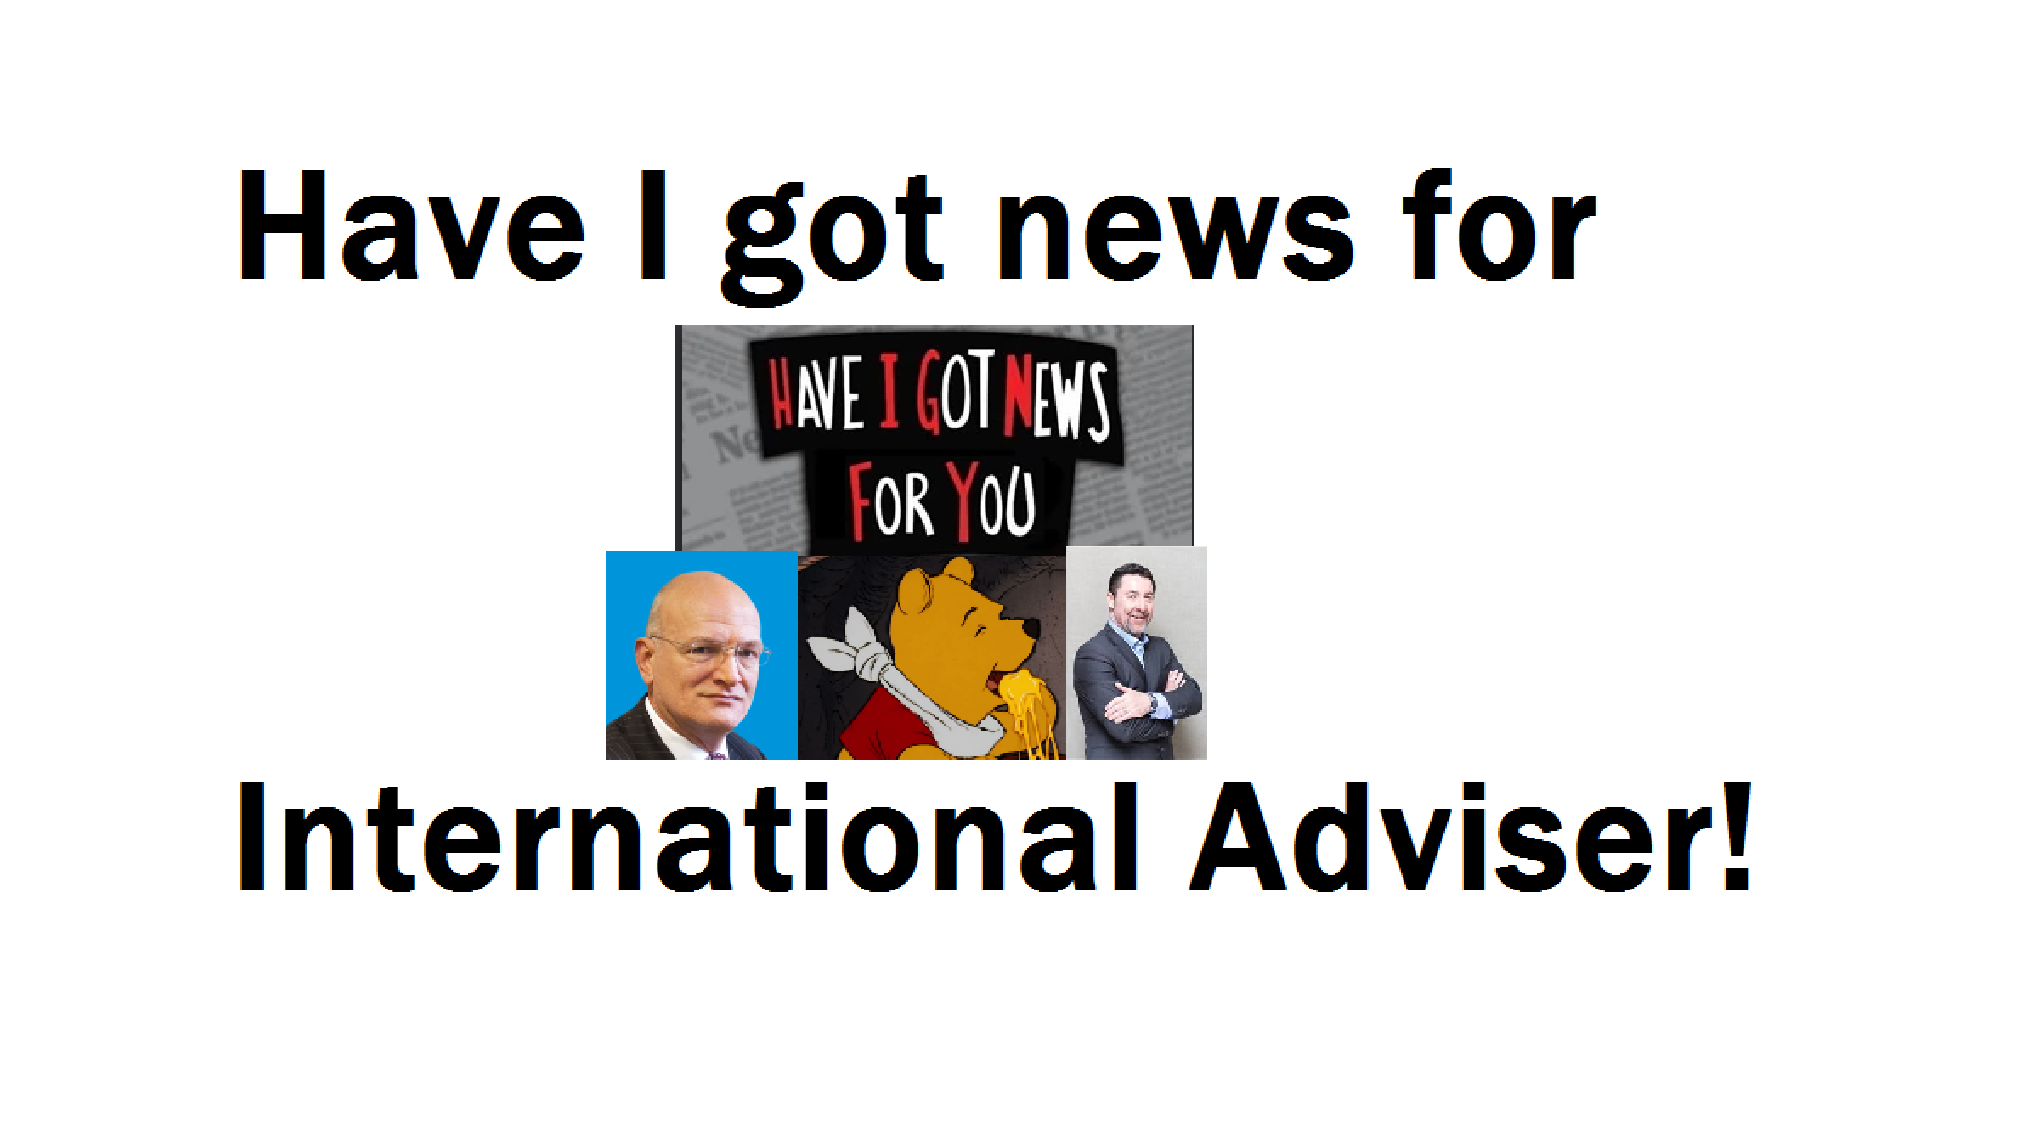 Have I got news for you!